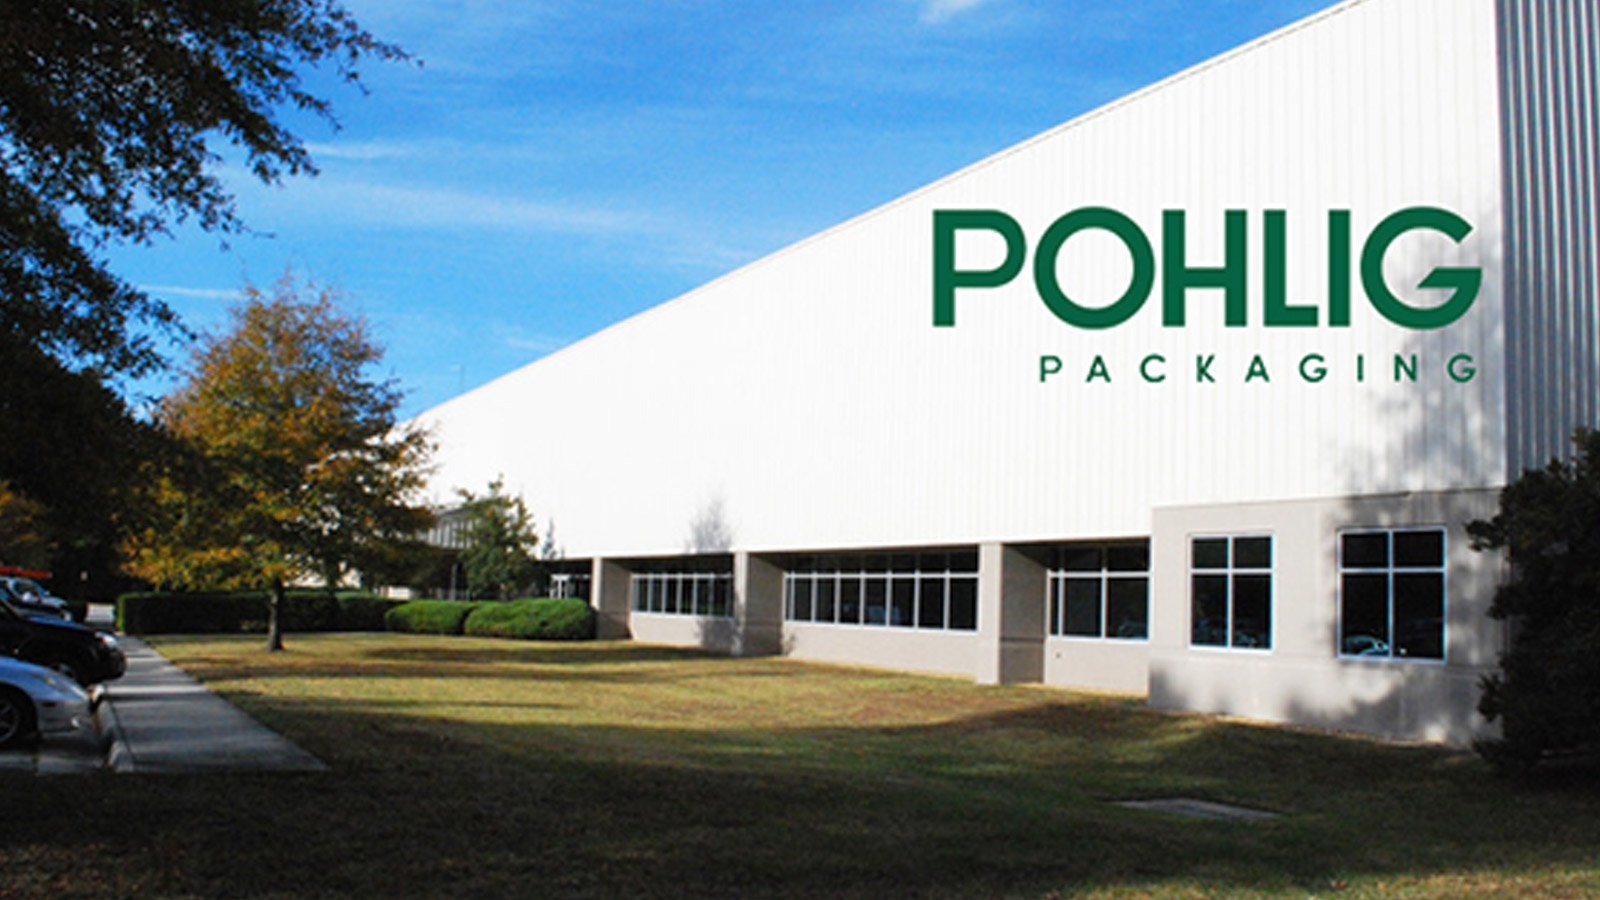 Pohlig Packaging, a packaging manufacturer based in Richmond, Virginia